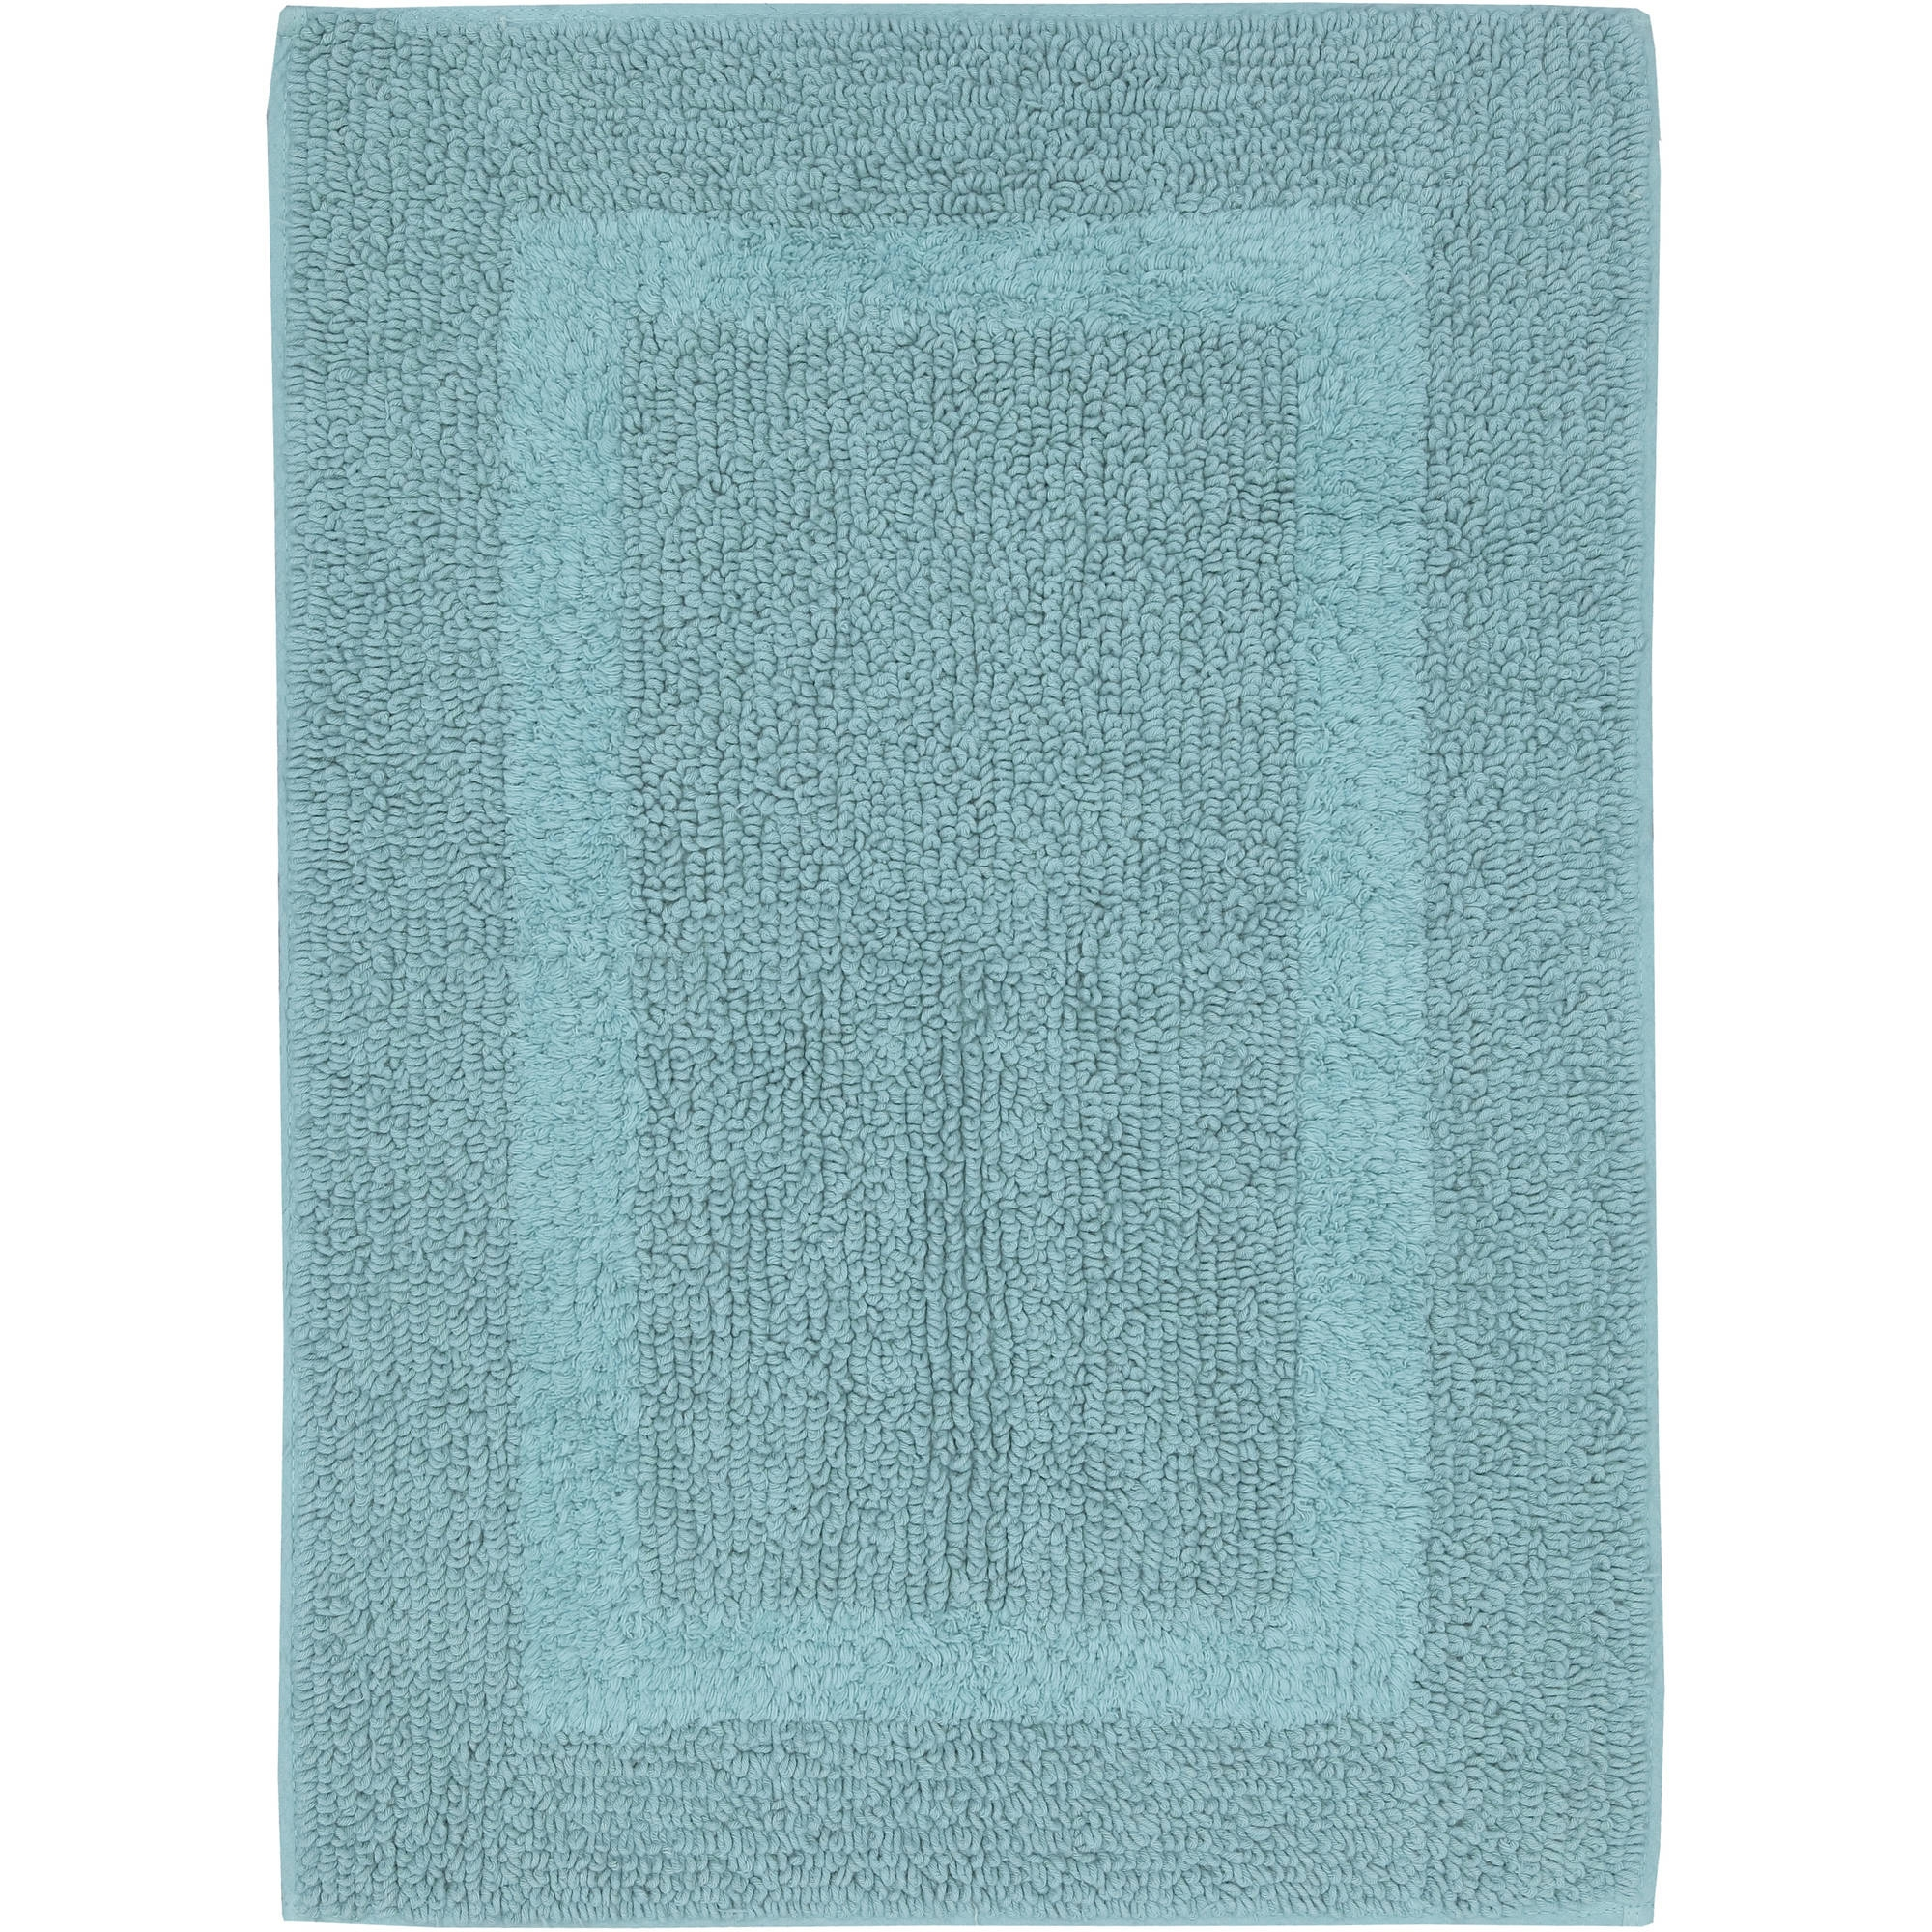 Permalink to Bright Aqua Bath Rugs